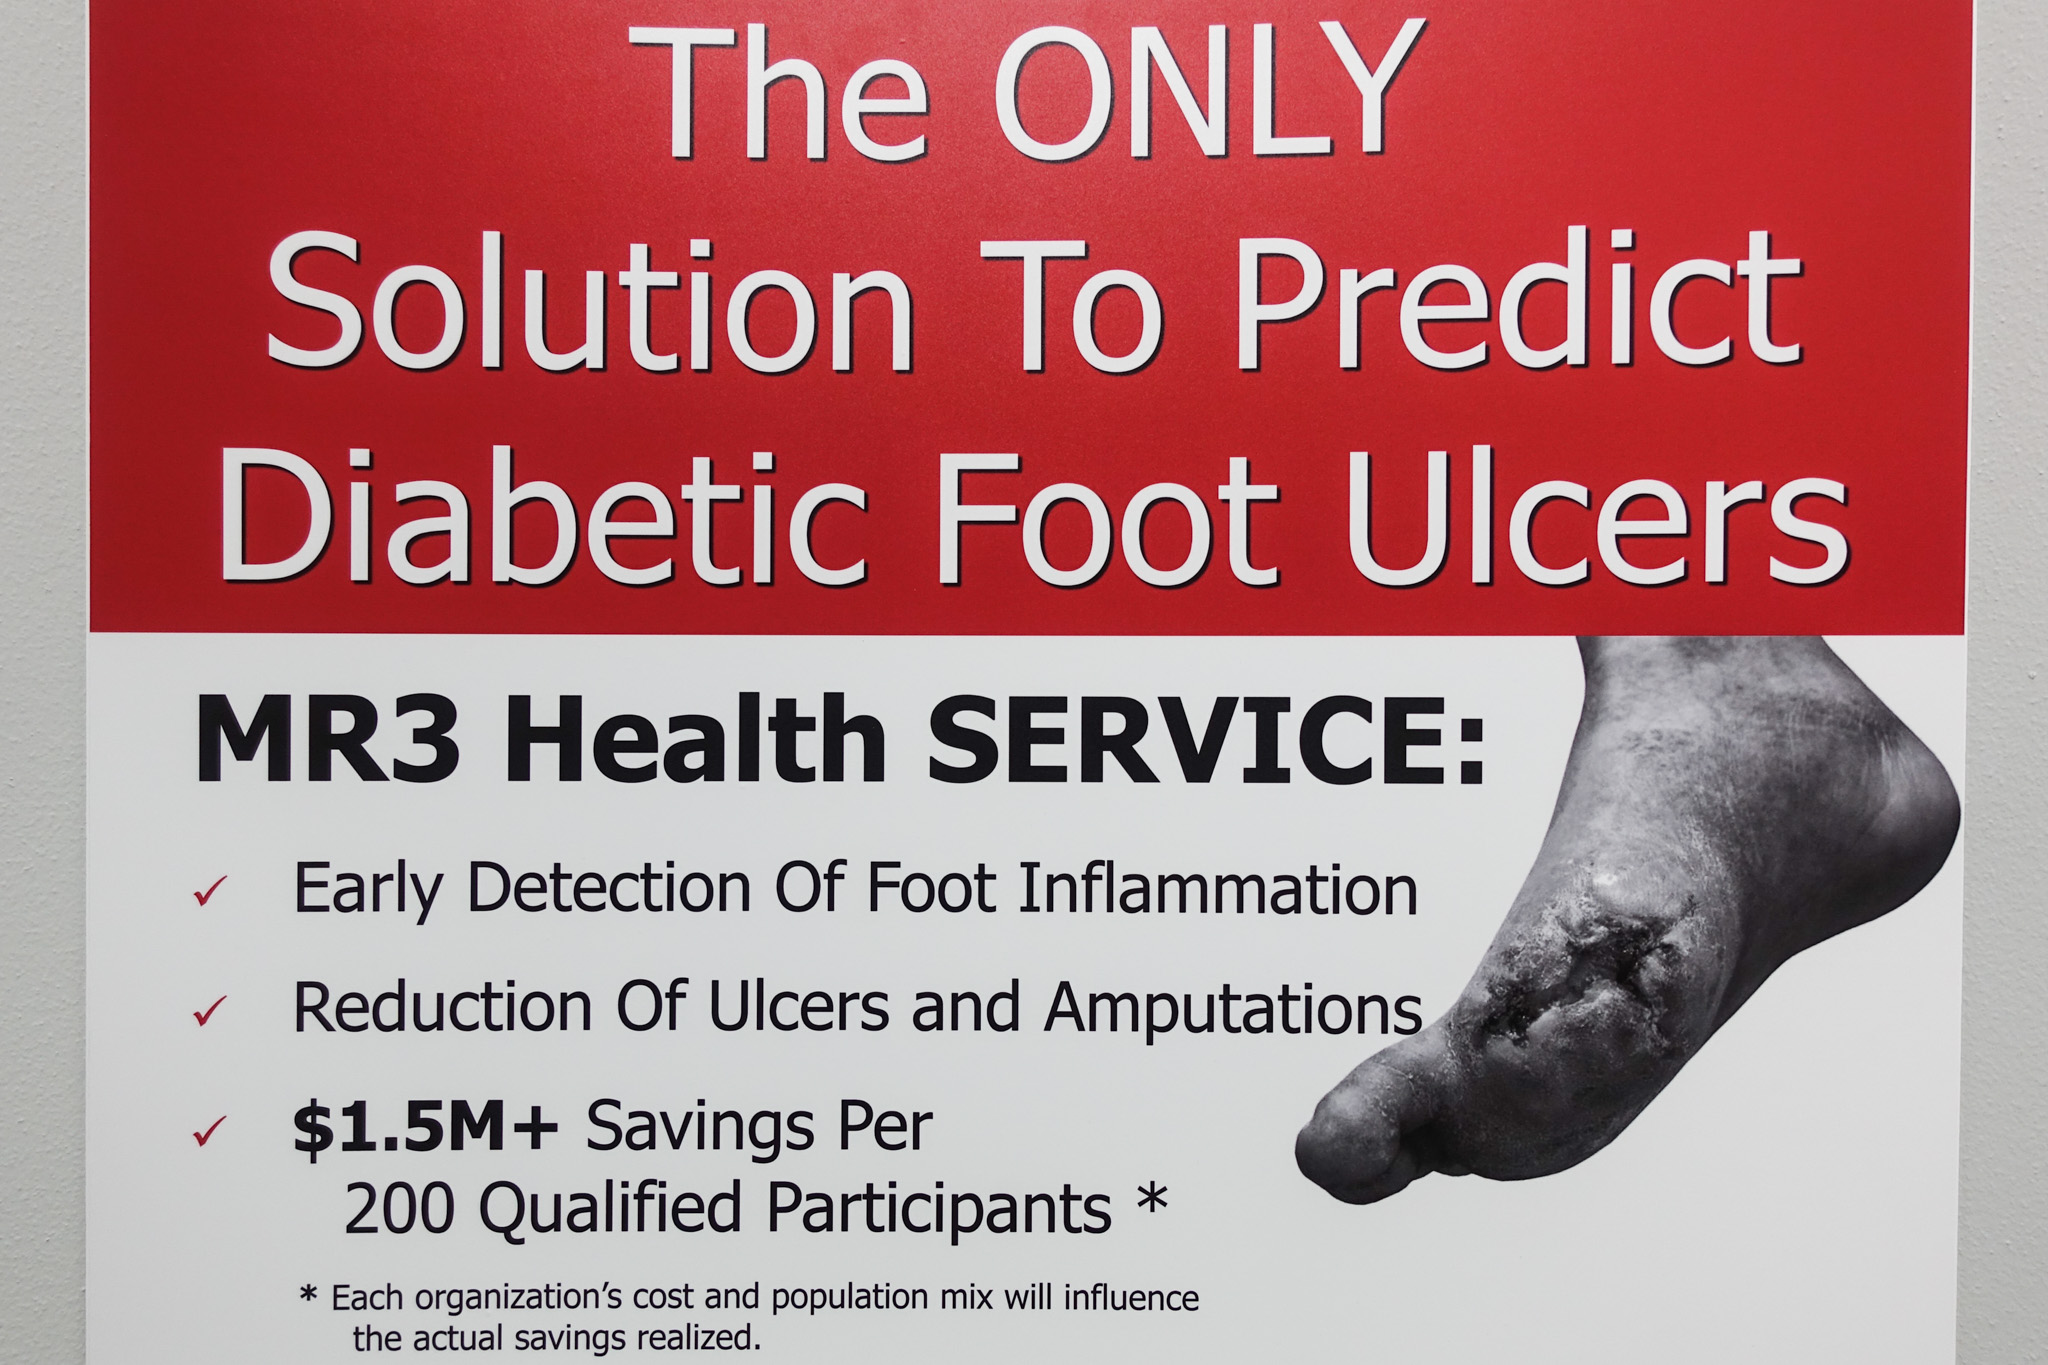 A sign advertises MR3 Health's diabetic foot sensor to predict diabetic foot ulcers in the MR3 Health office.